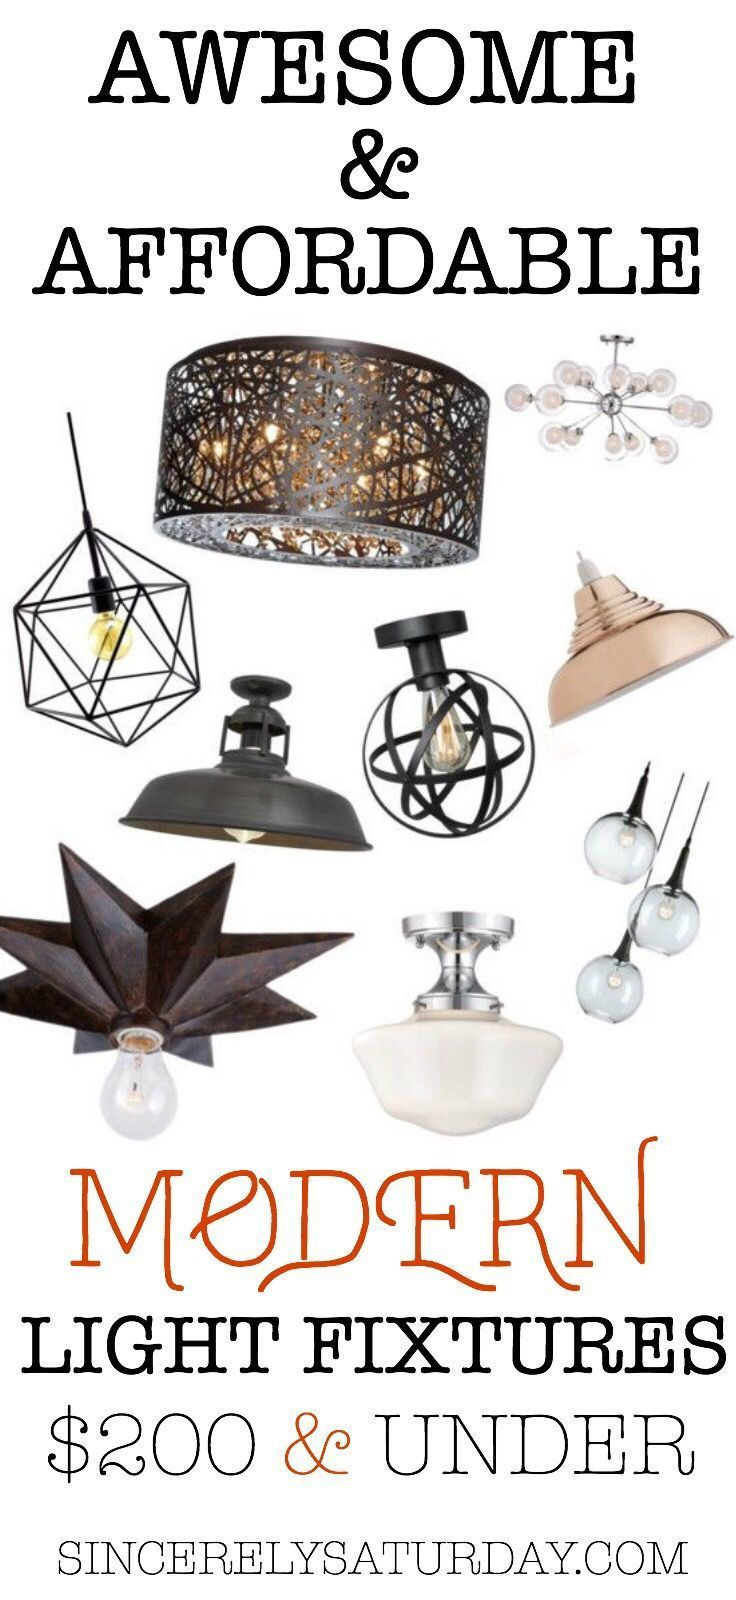 Light fixtures modern awesome and affordable cheap light light fixtures modern awesome and affordable sincerely saturday cheap arubaitofo Image collections